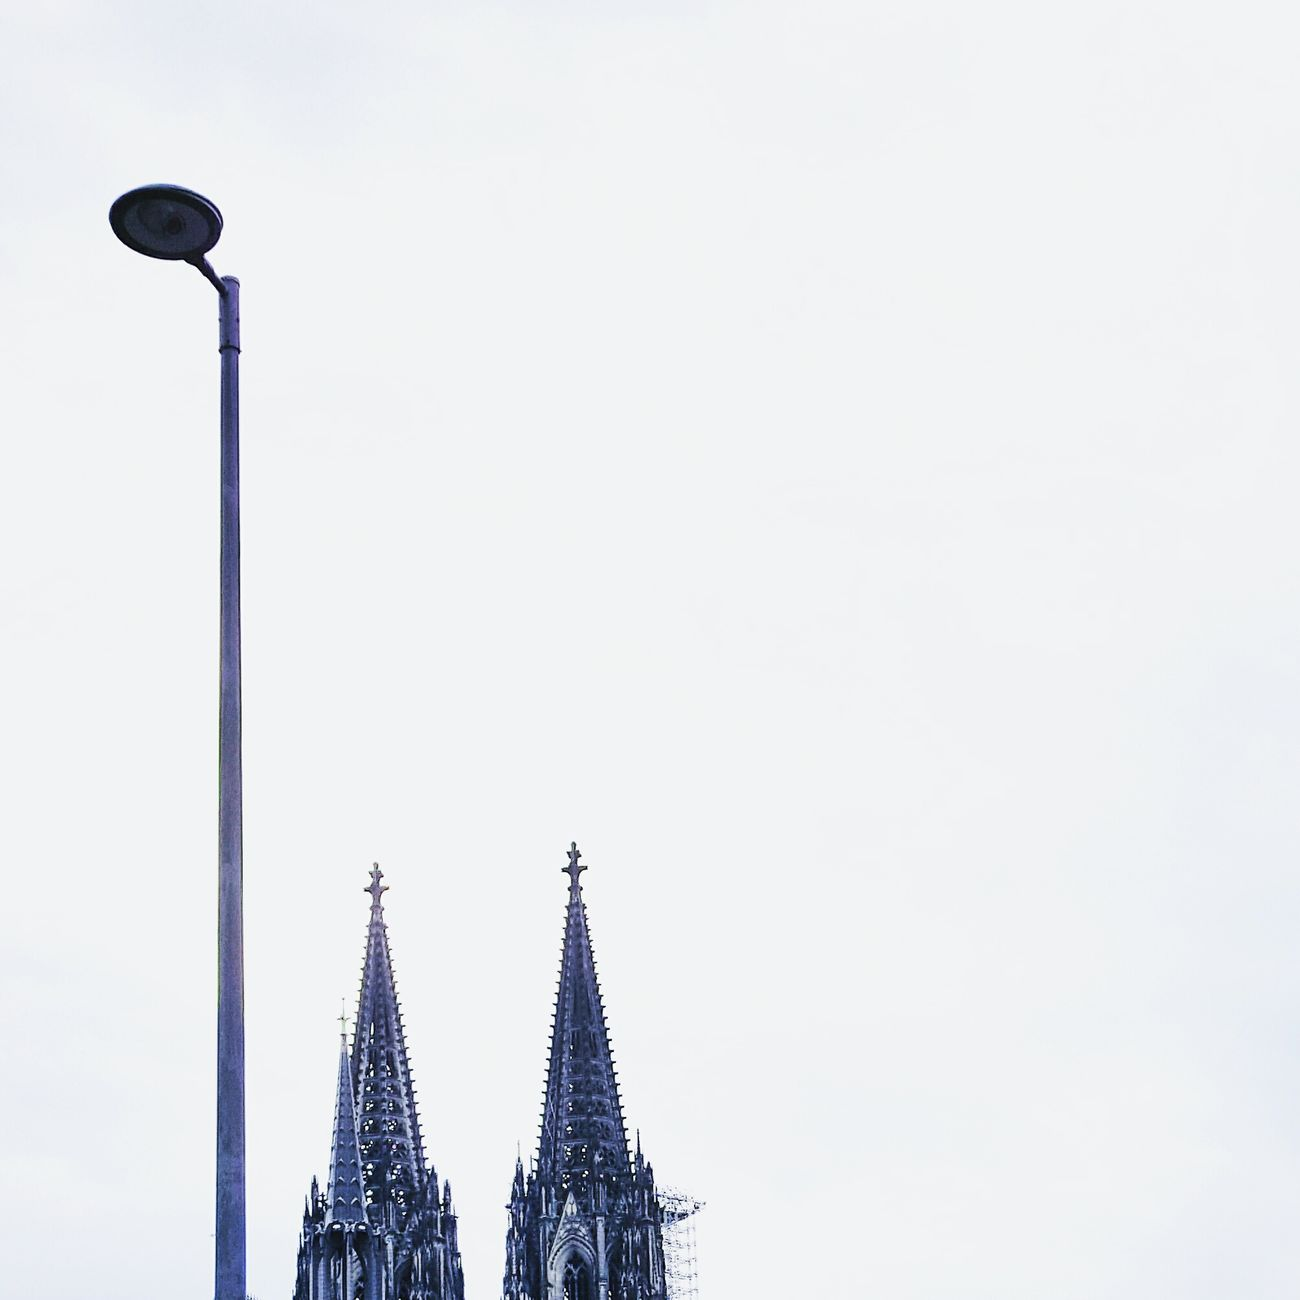 Urban Highinthesky Cologne Köln Cathedral City Life Cityscape Arhitecture Urban Structures